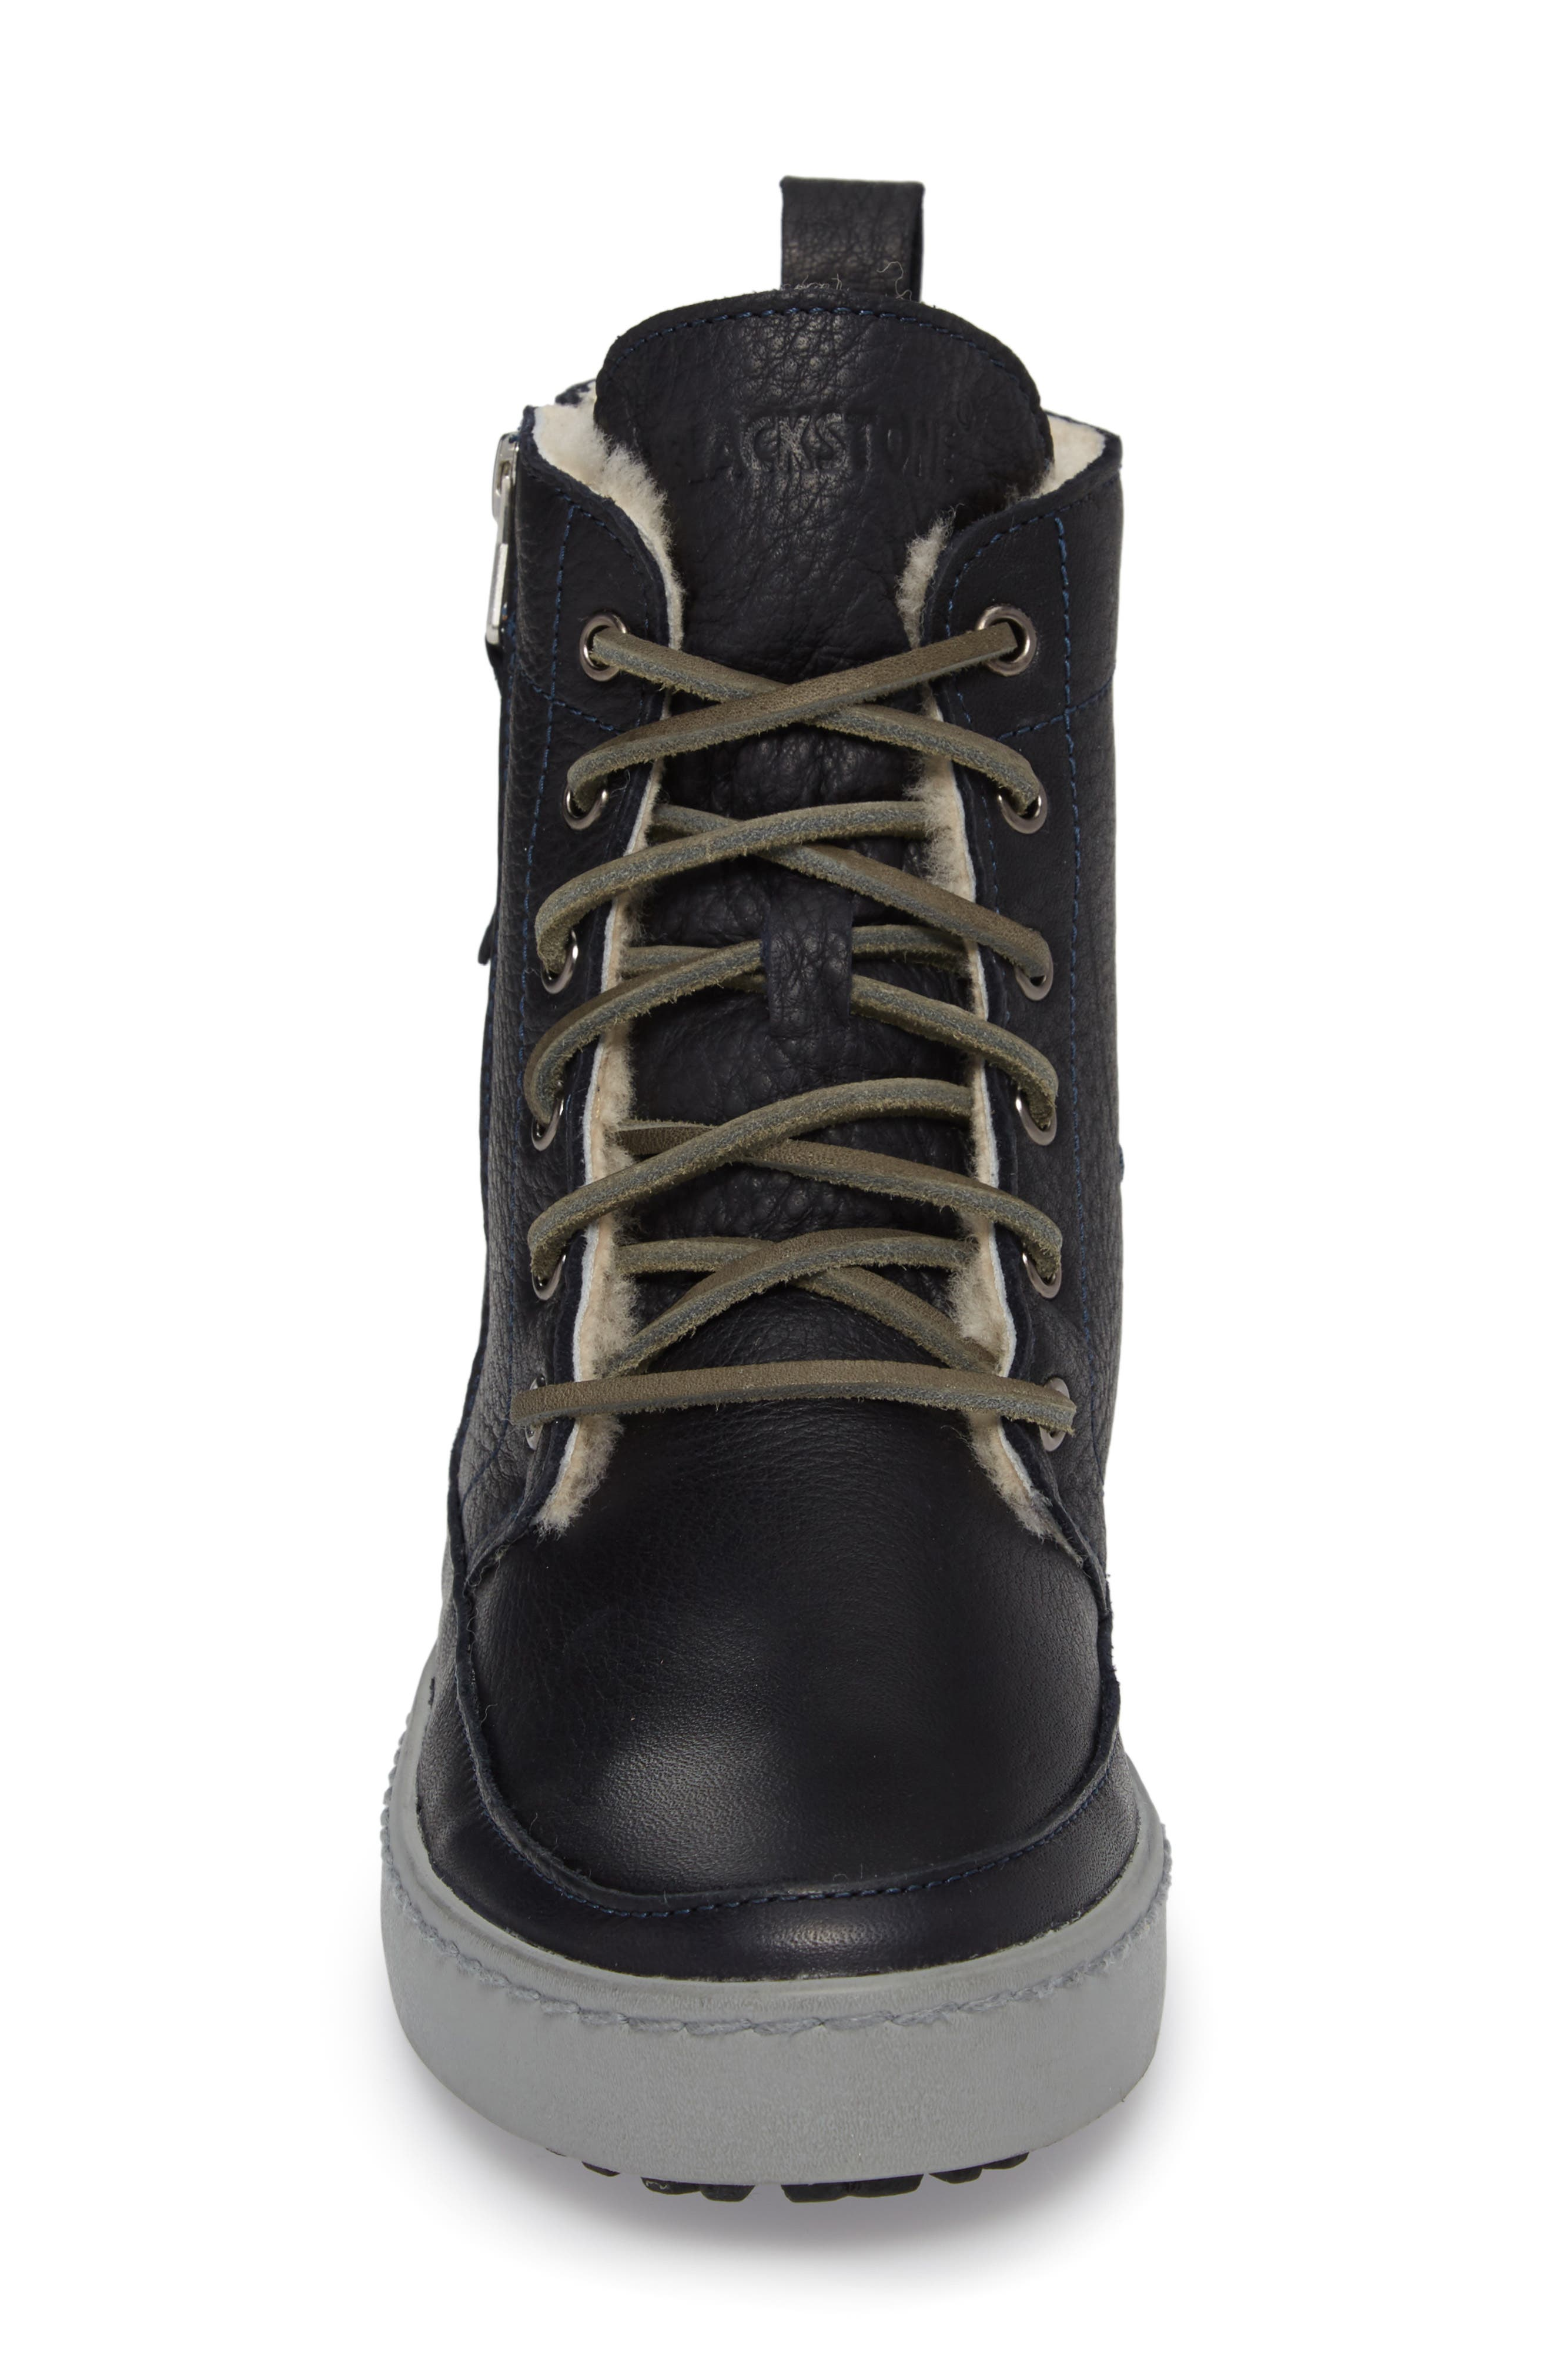 'CW96' Genuine Shearling Lined Sneaker Boot,                             Alternate thumbnail 4, color,                             Dark Indigo Leather